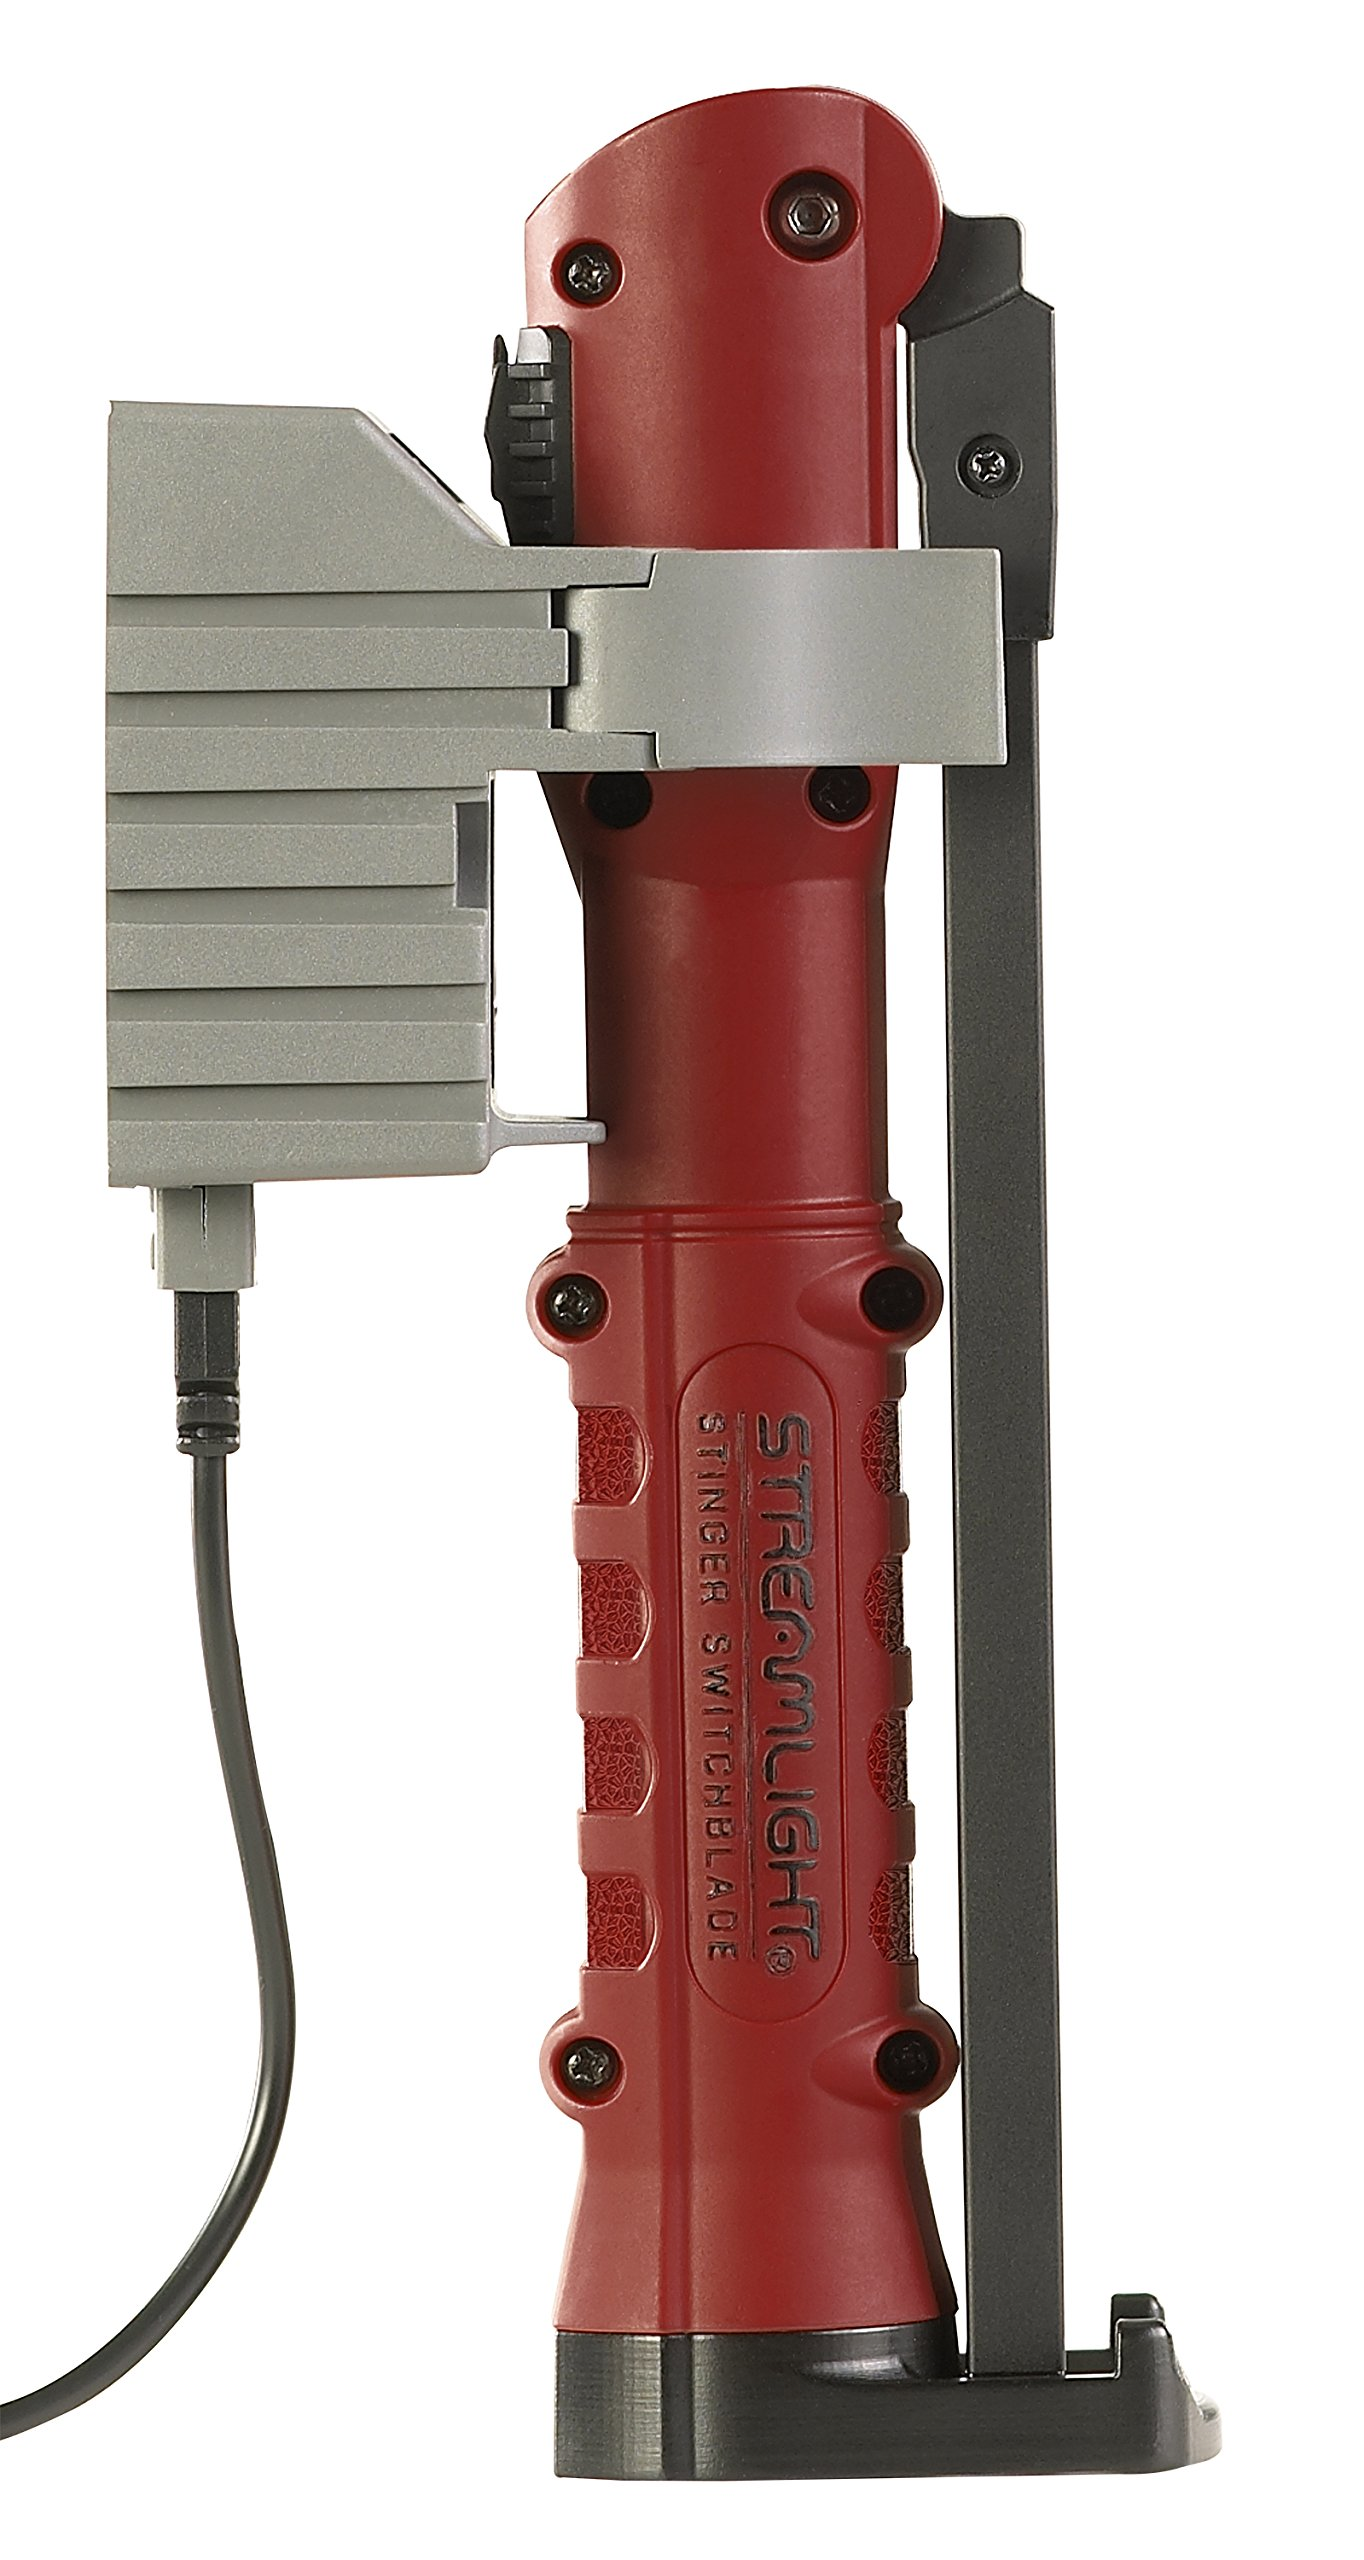 Streamlight 76800 Stinger Switchblade USB Cord Red Flashlight by Streamlight